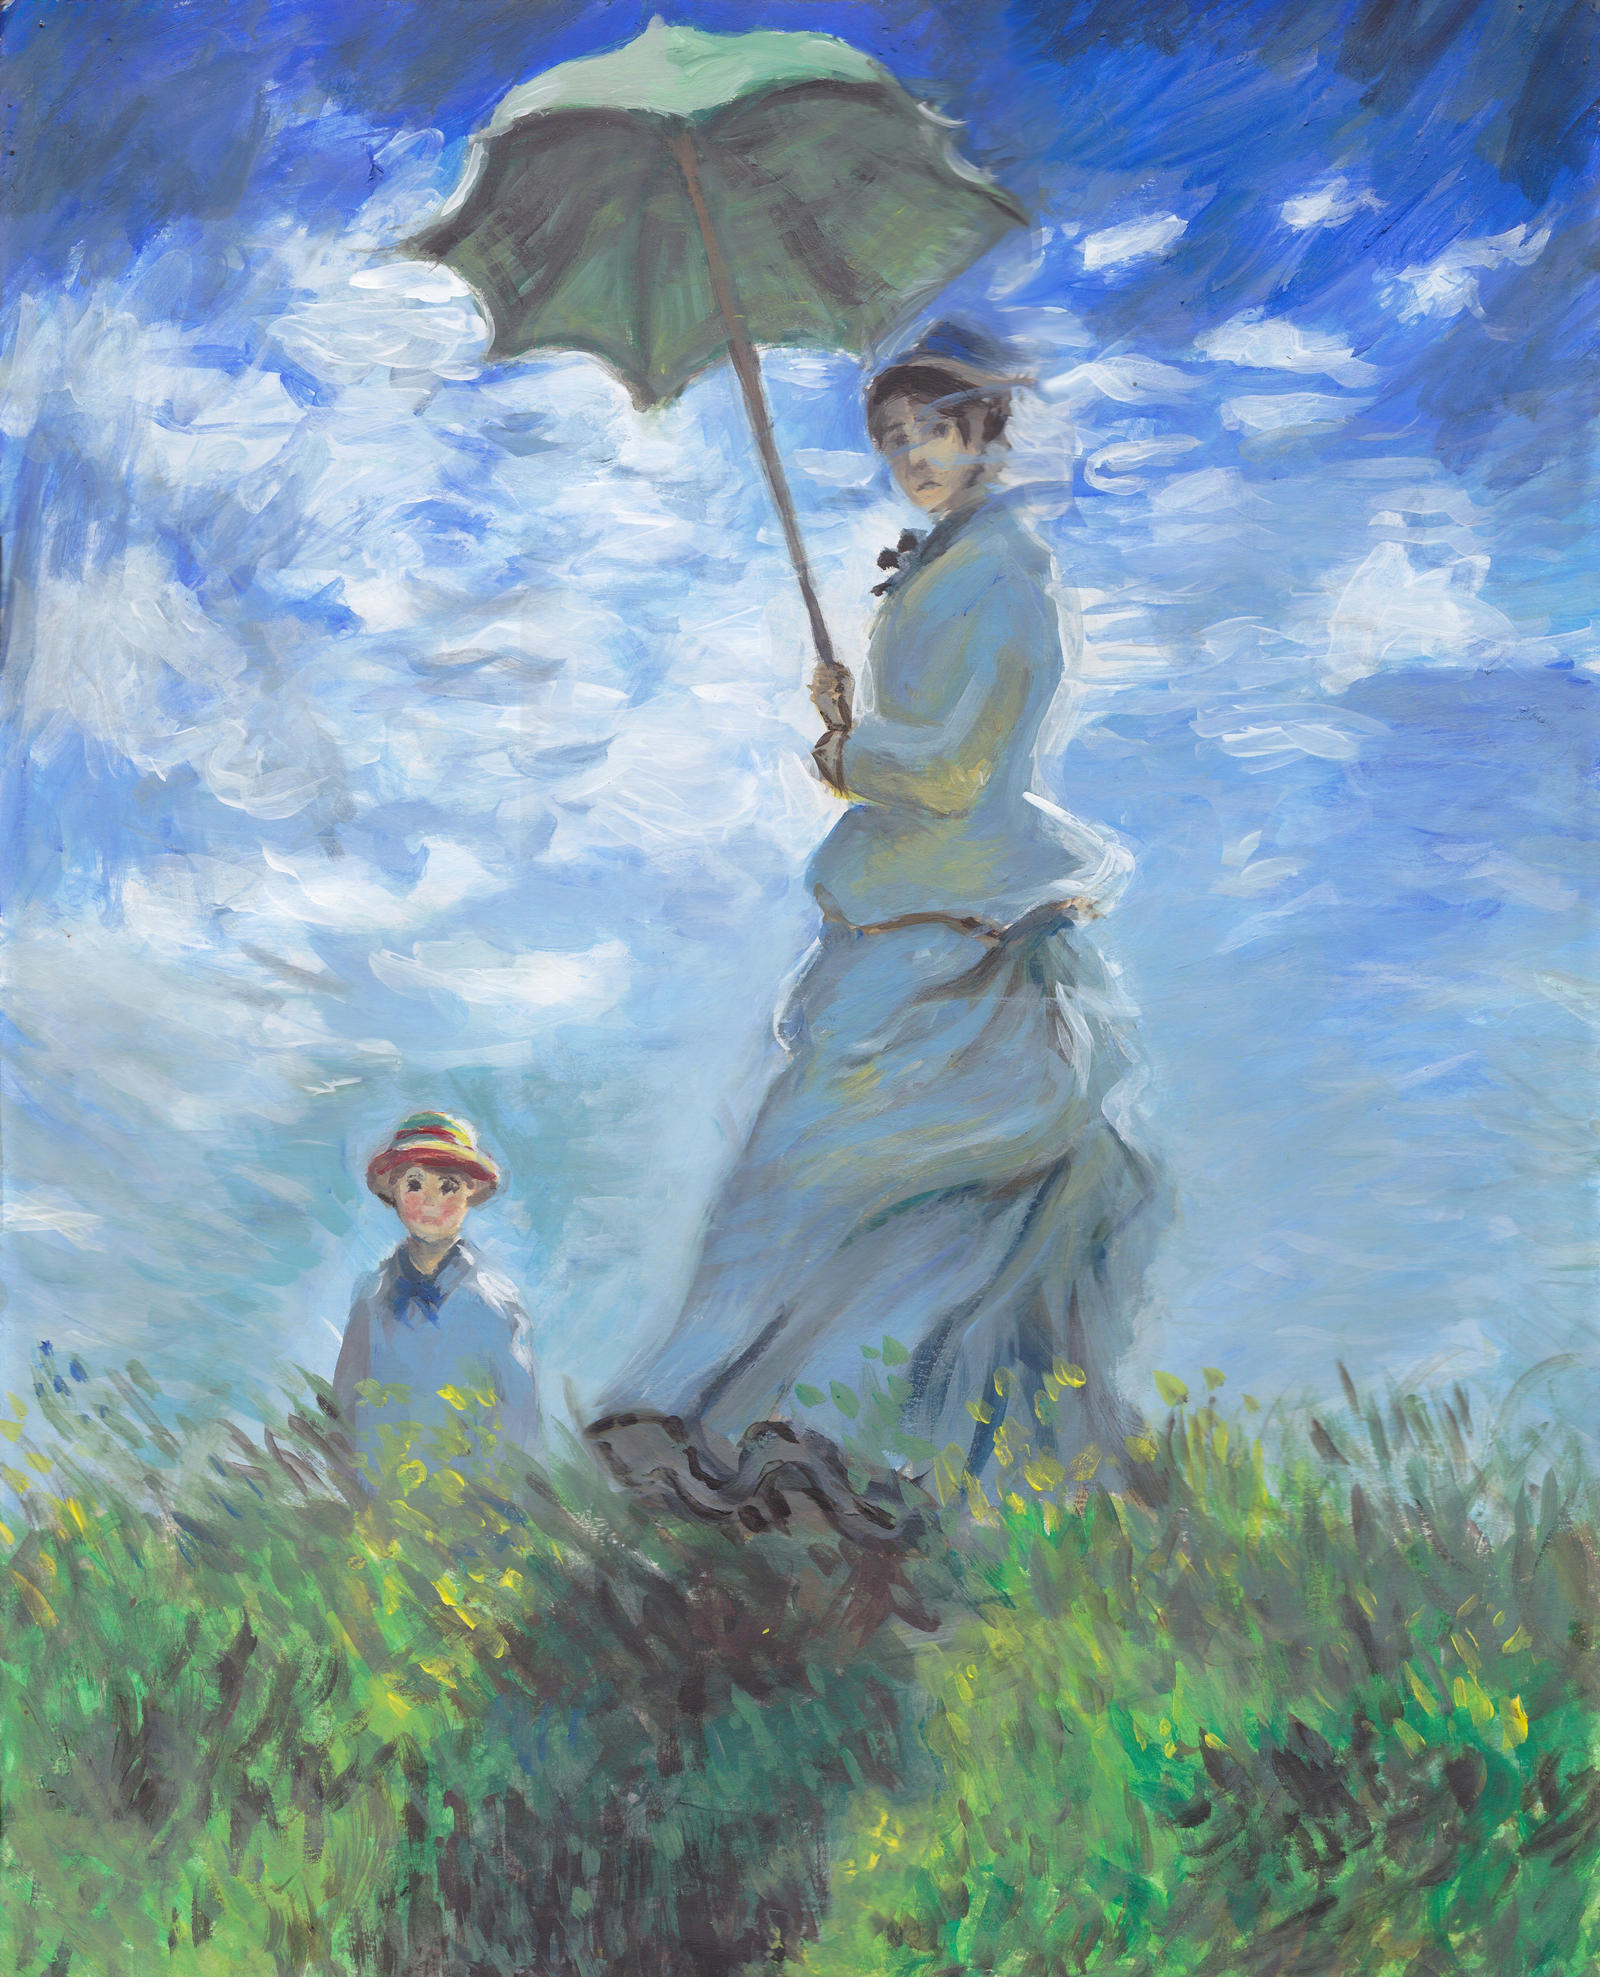 Blue Paintings Of Woman And Umbrella